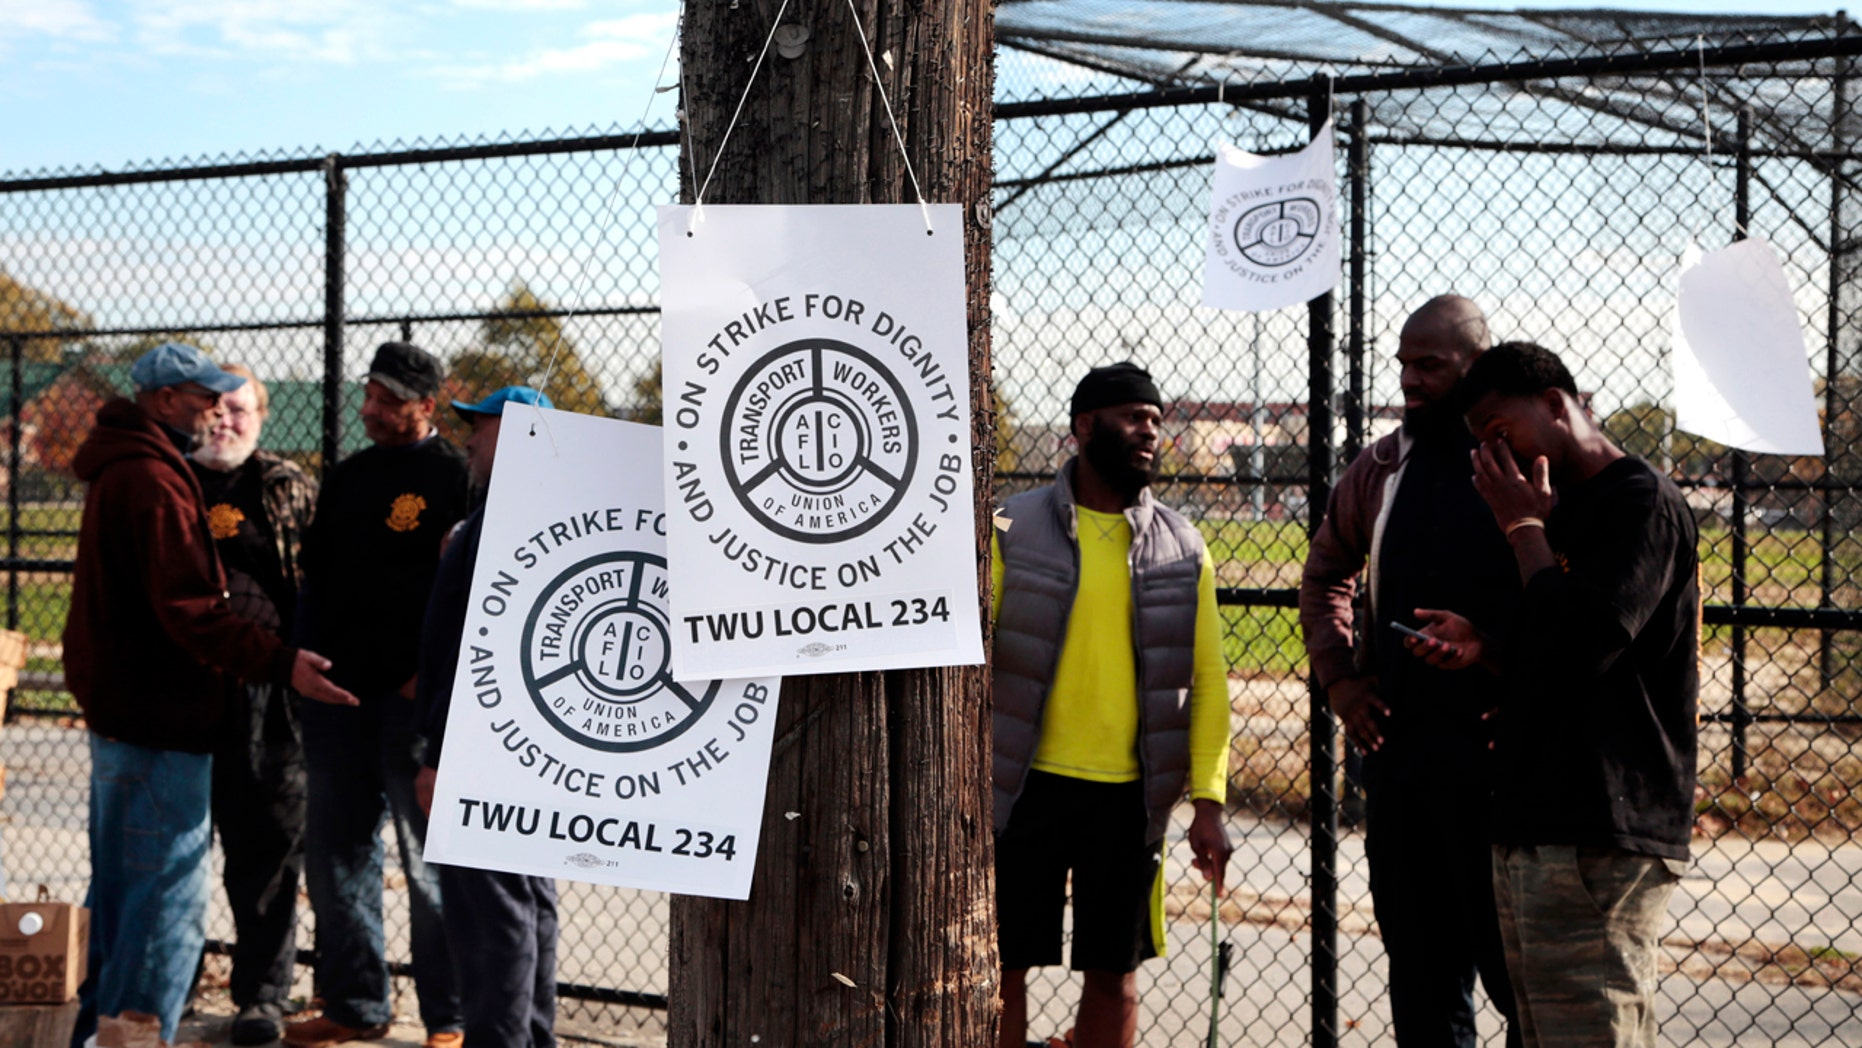 Signs hang on a telephone pole as workers picket across from the Callowhill SEPTA Depot Tuesday, Nov. 1, 2016, in Philadelphia.